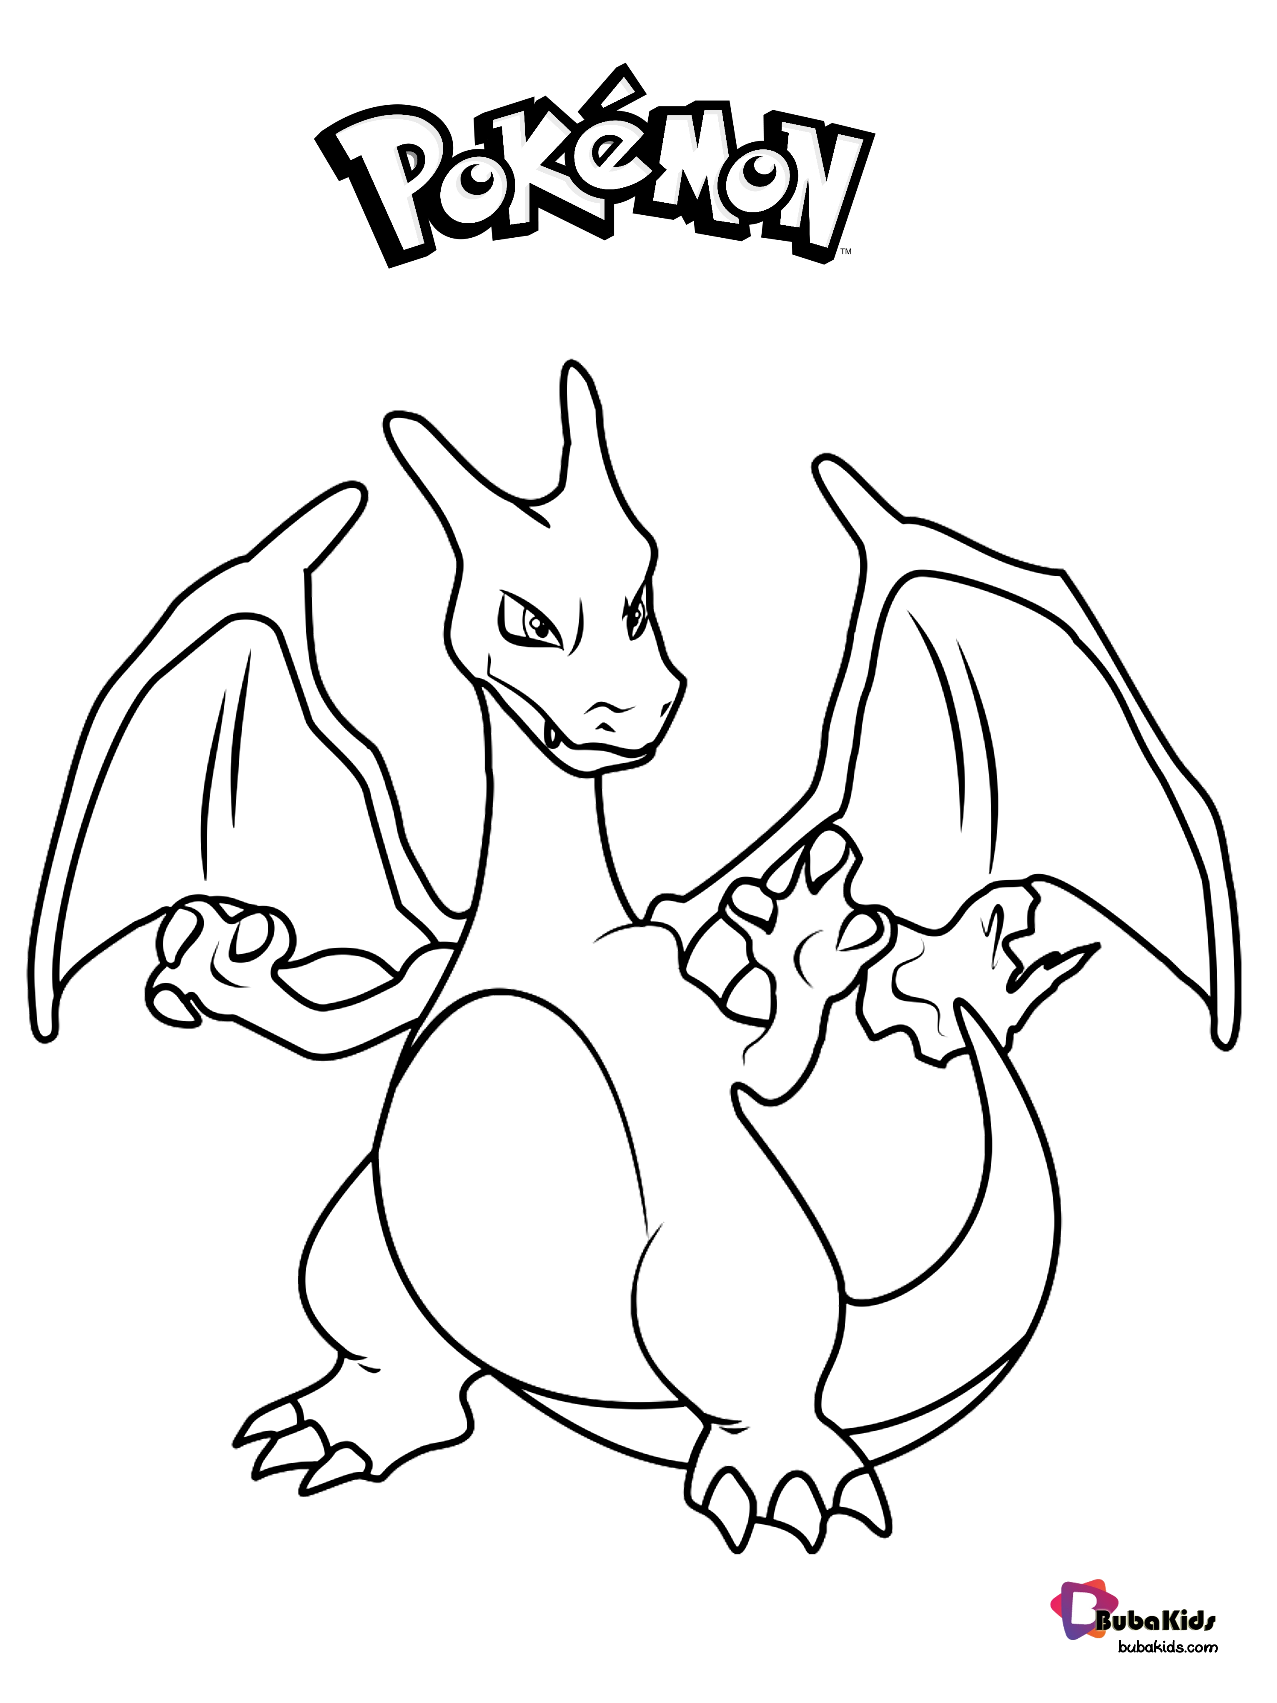 Free Pokemon Charizard Coloring Page Collection Of Cartoon Coloring Pages For Teenage Printable Cartoon Coloring Pages Pokemon Coloring Pages Pokemon Coloring